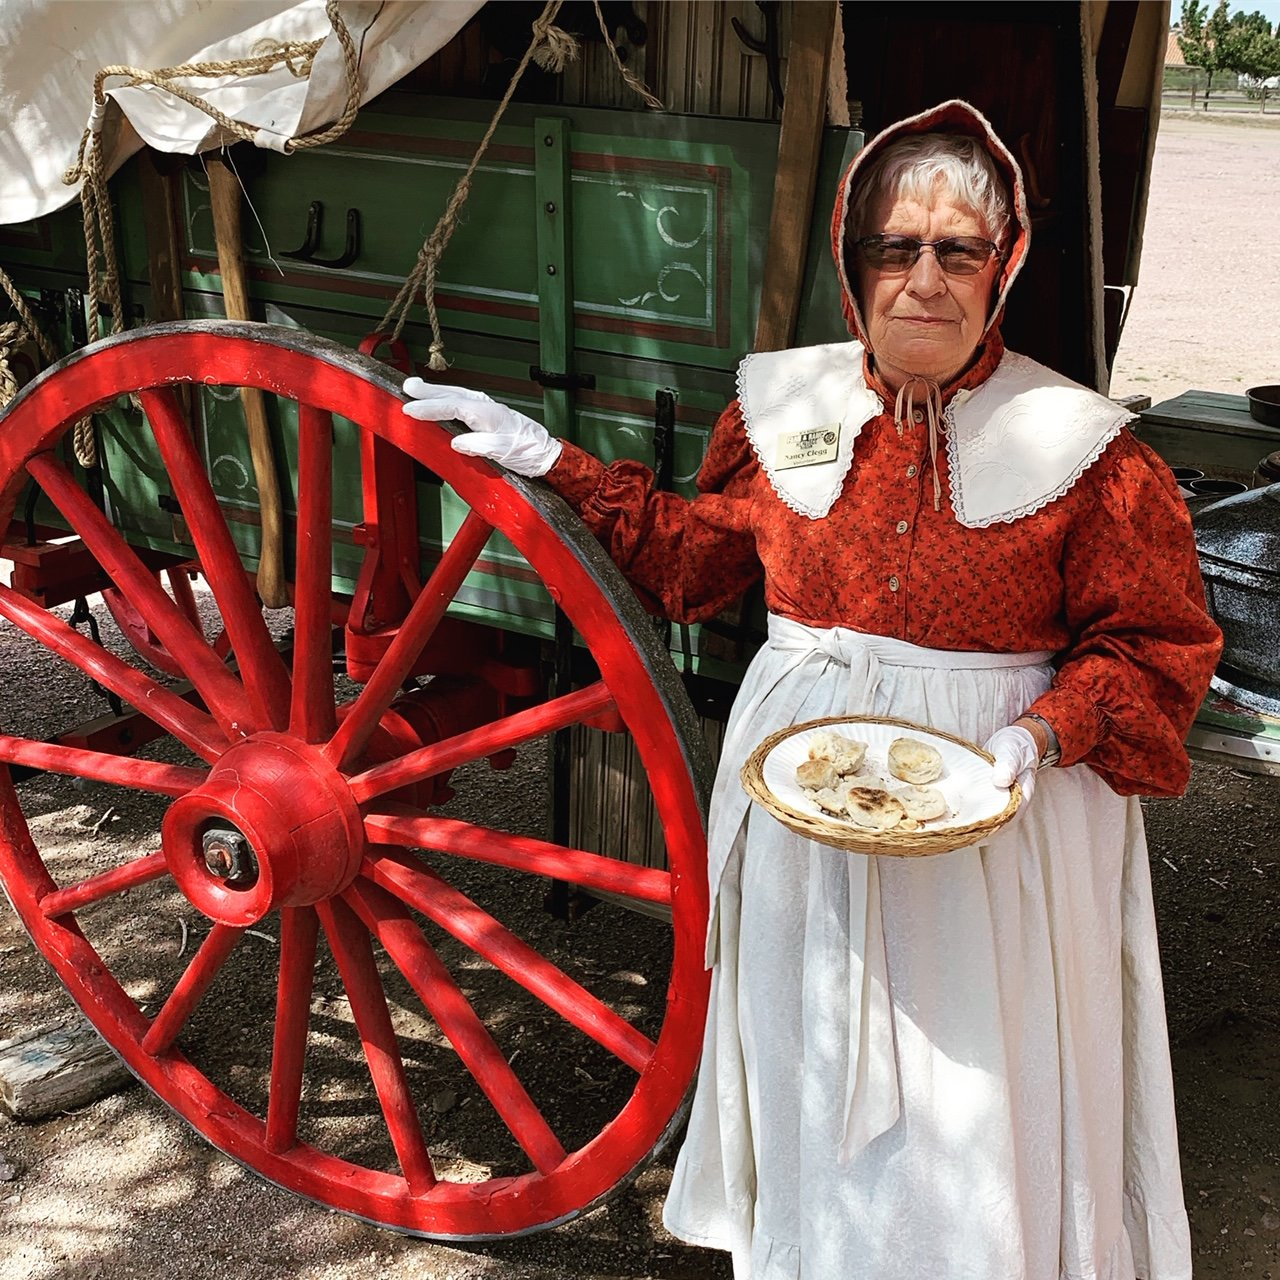 1)Nancy Clegg, one of the Museum's volunteers, will be among two chuck wagon crews making tasty samples.